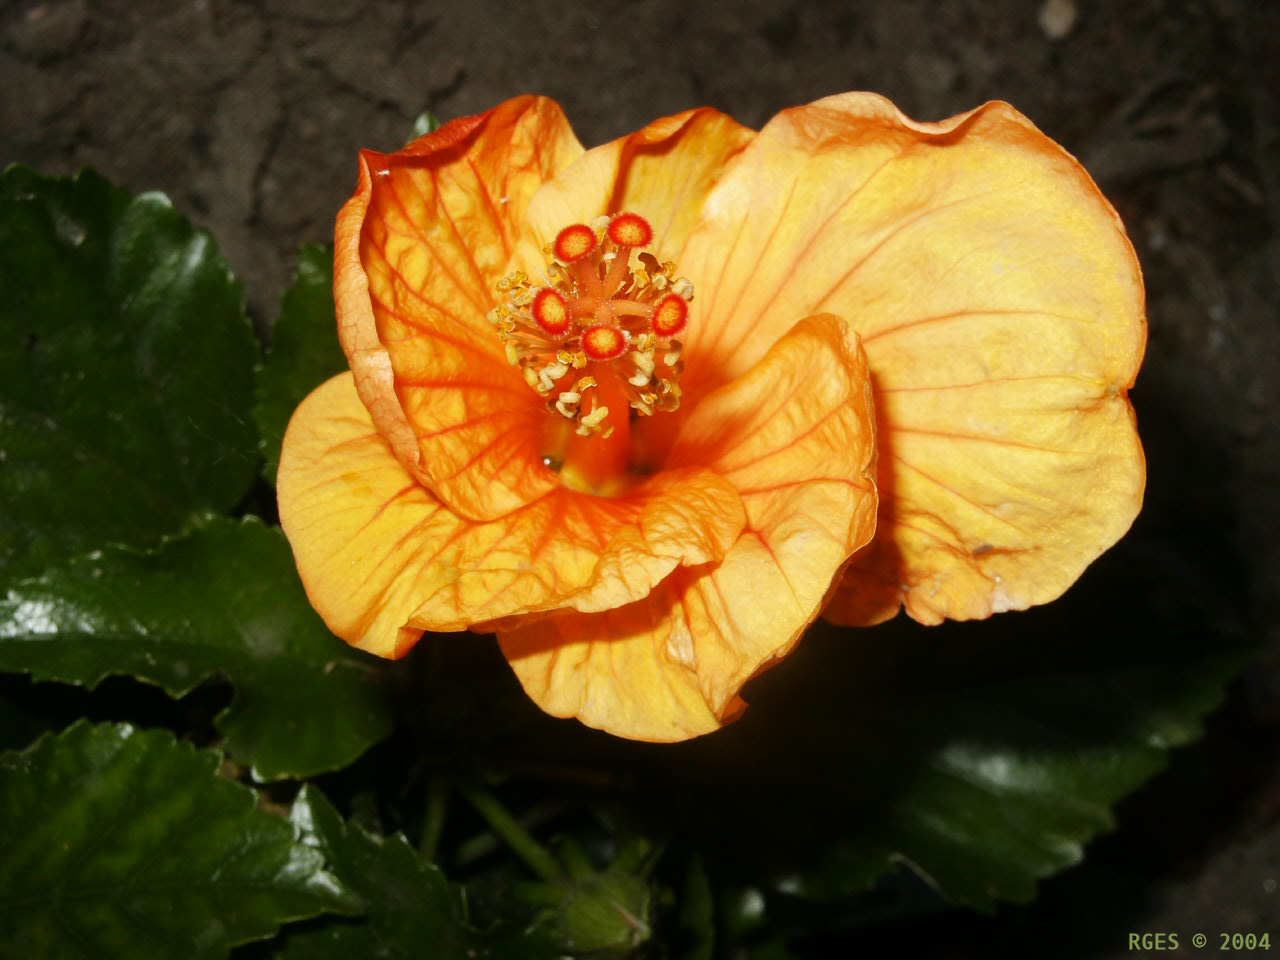 Orange Hibiscus flower [NL 2004] © RGES